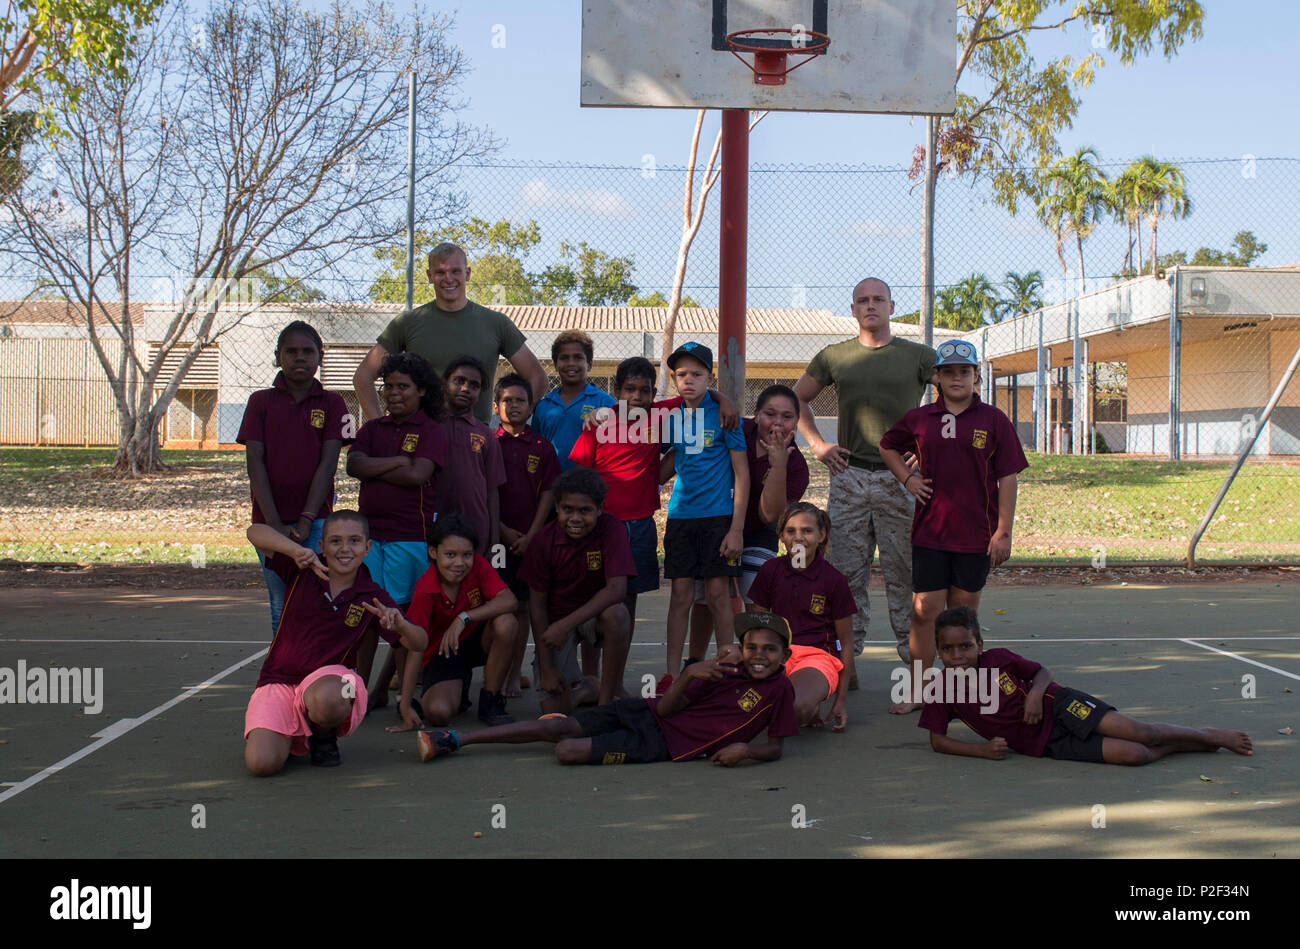 U.S. Marine Corps Cpl. Cody Braunscheidel, left, an aviation logistics information management systems specialist, and Cpl. Landis Lied, right, an embarkation and logistics specialist assigned to Marine Fighter Attack Squadron (VMFA) 122, pose with students from MacFarlane Primary School in Katherine, Northern Territory, Australia, Sept. 1, 2016. Marines are invited to mentor, teach and serve as role models to the students every iteration of Southern Frontier, a three week unit level training conducted by U.S. Marines at Royal Australian Air Force Base Tindal. With a population of 92 percent in - Stock Image